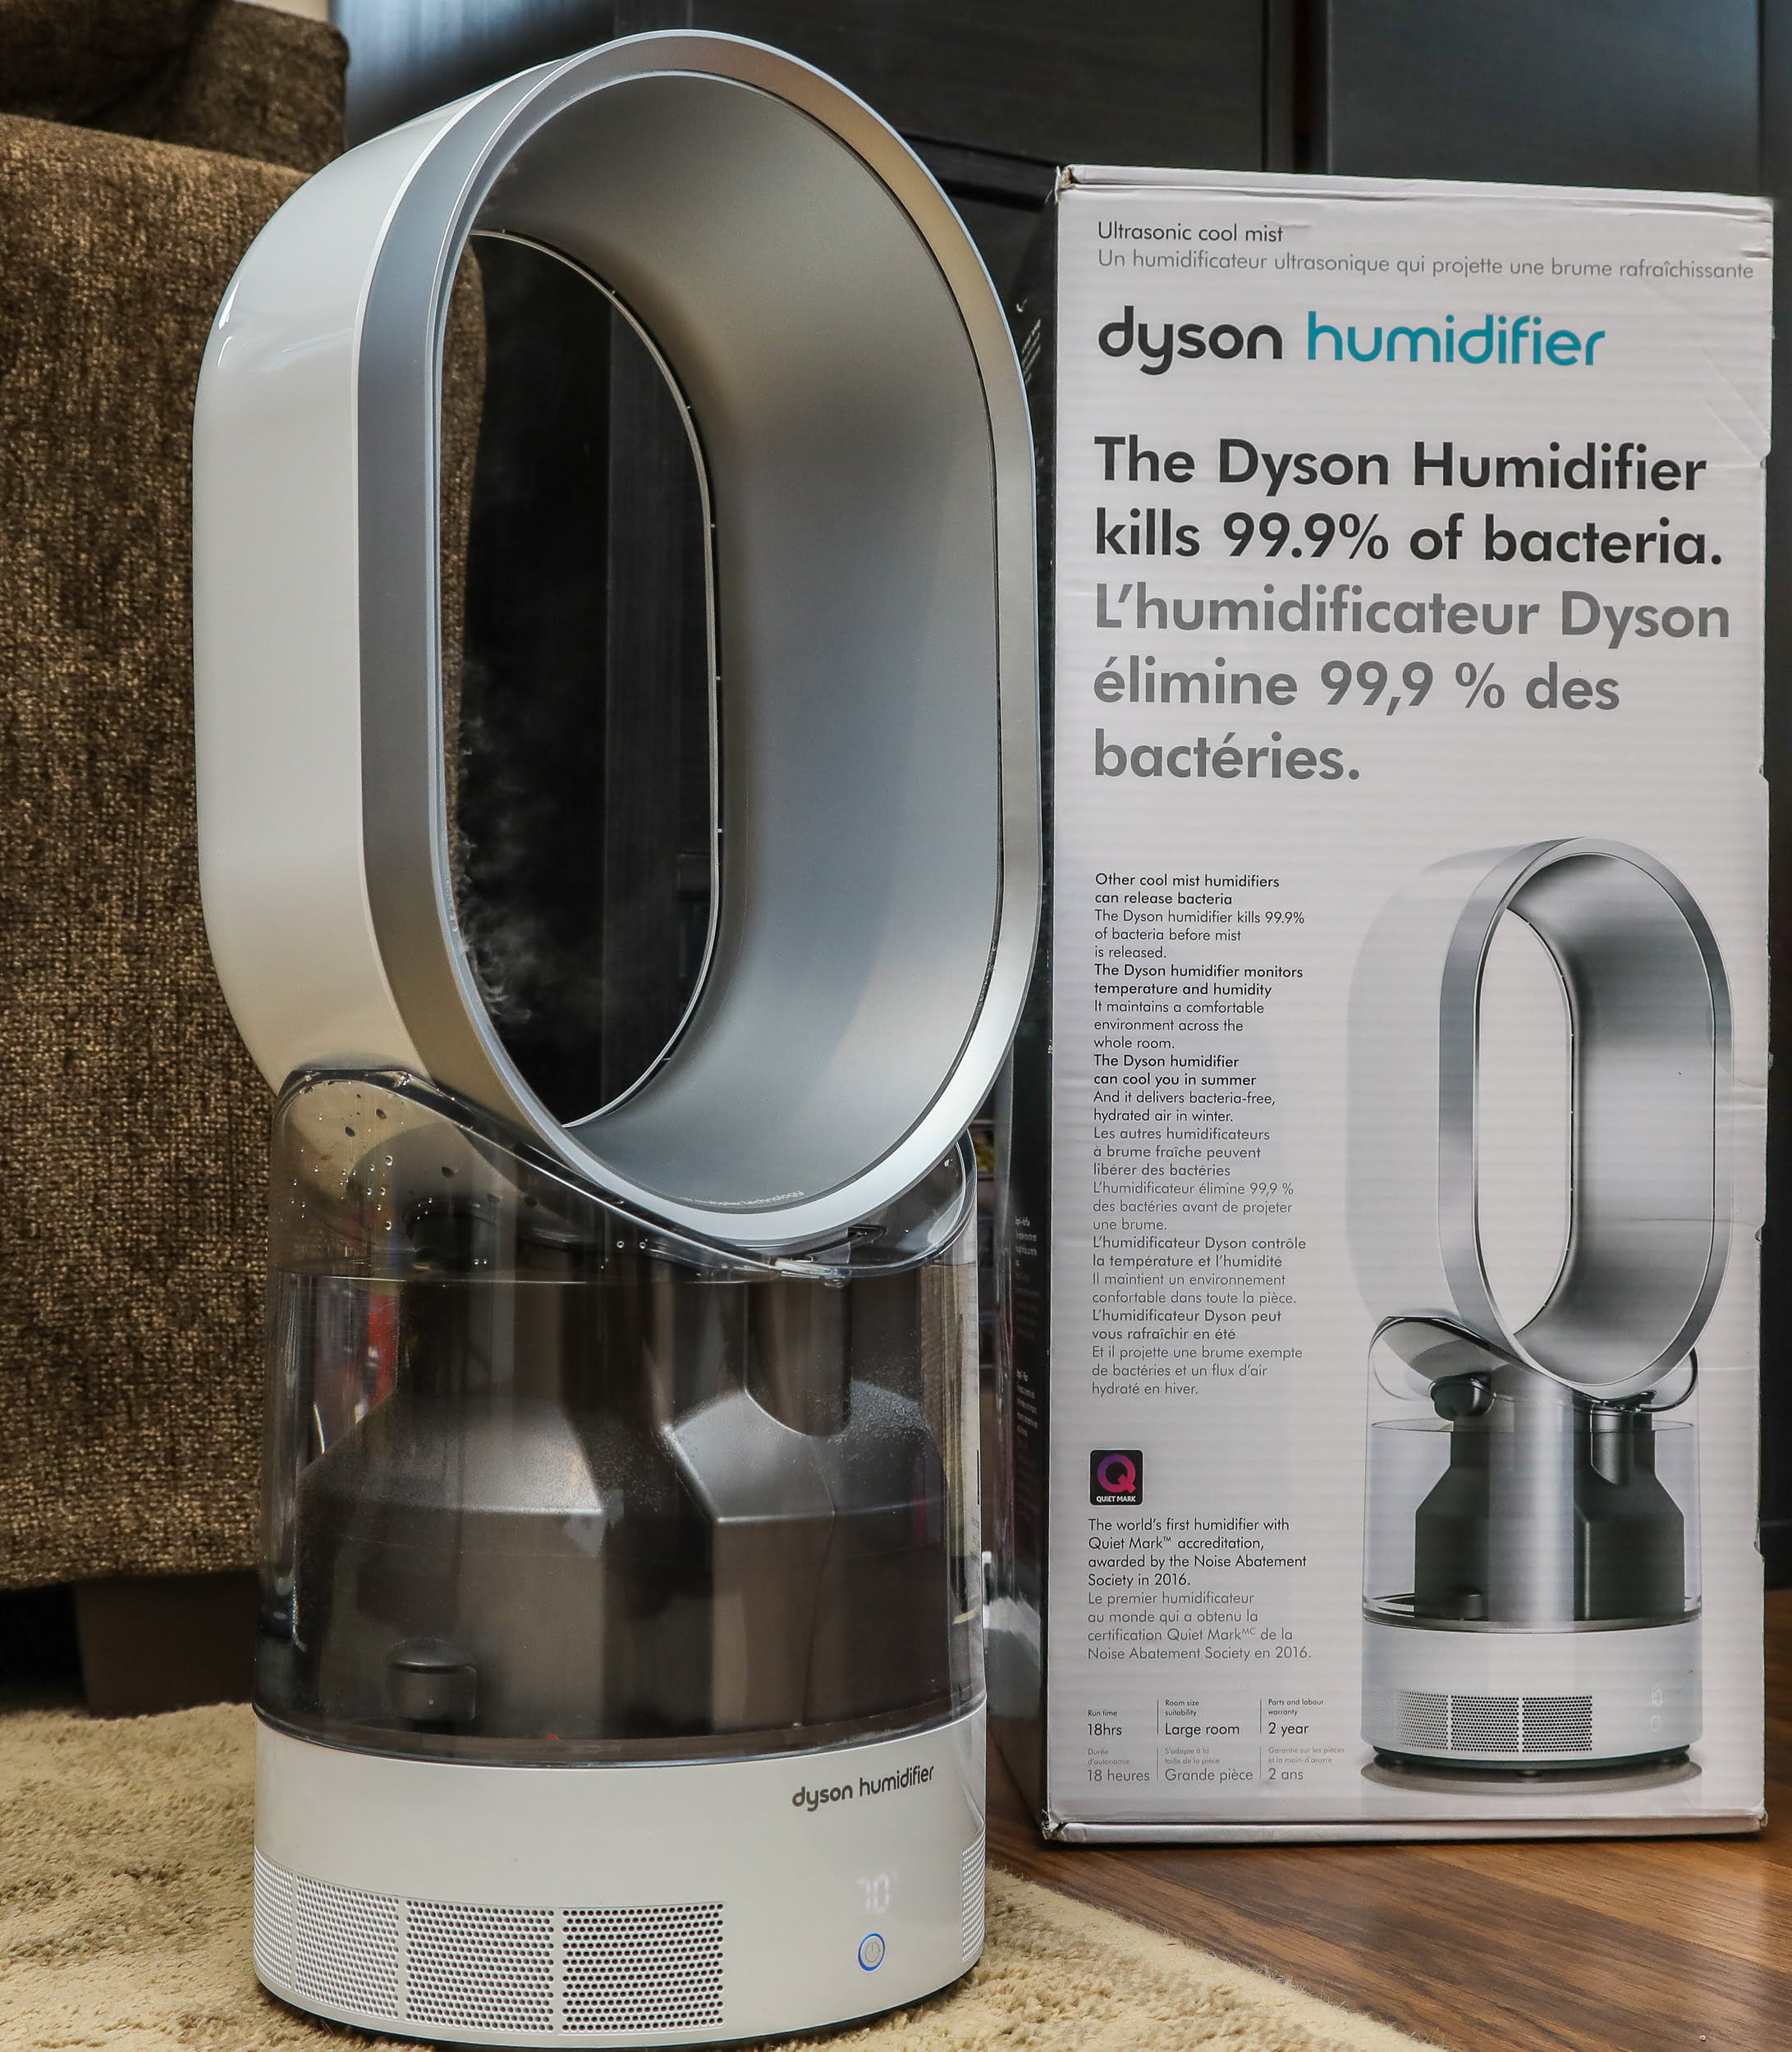 Dyson Humidifier with ultraviolet cleanse technology